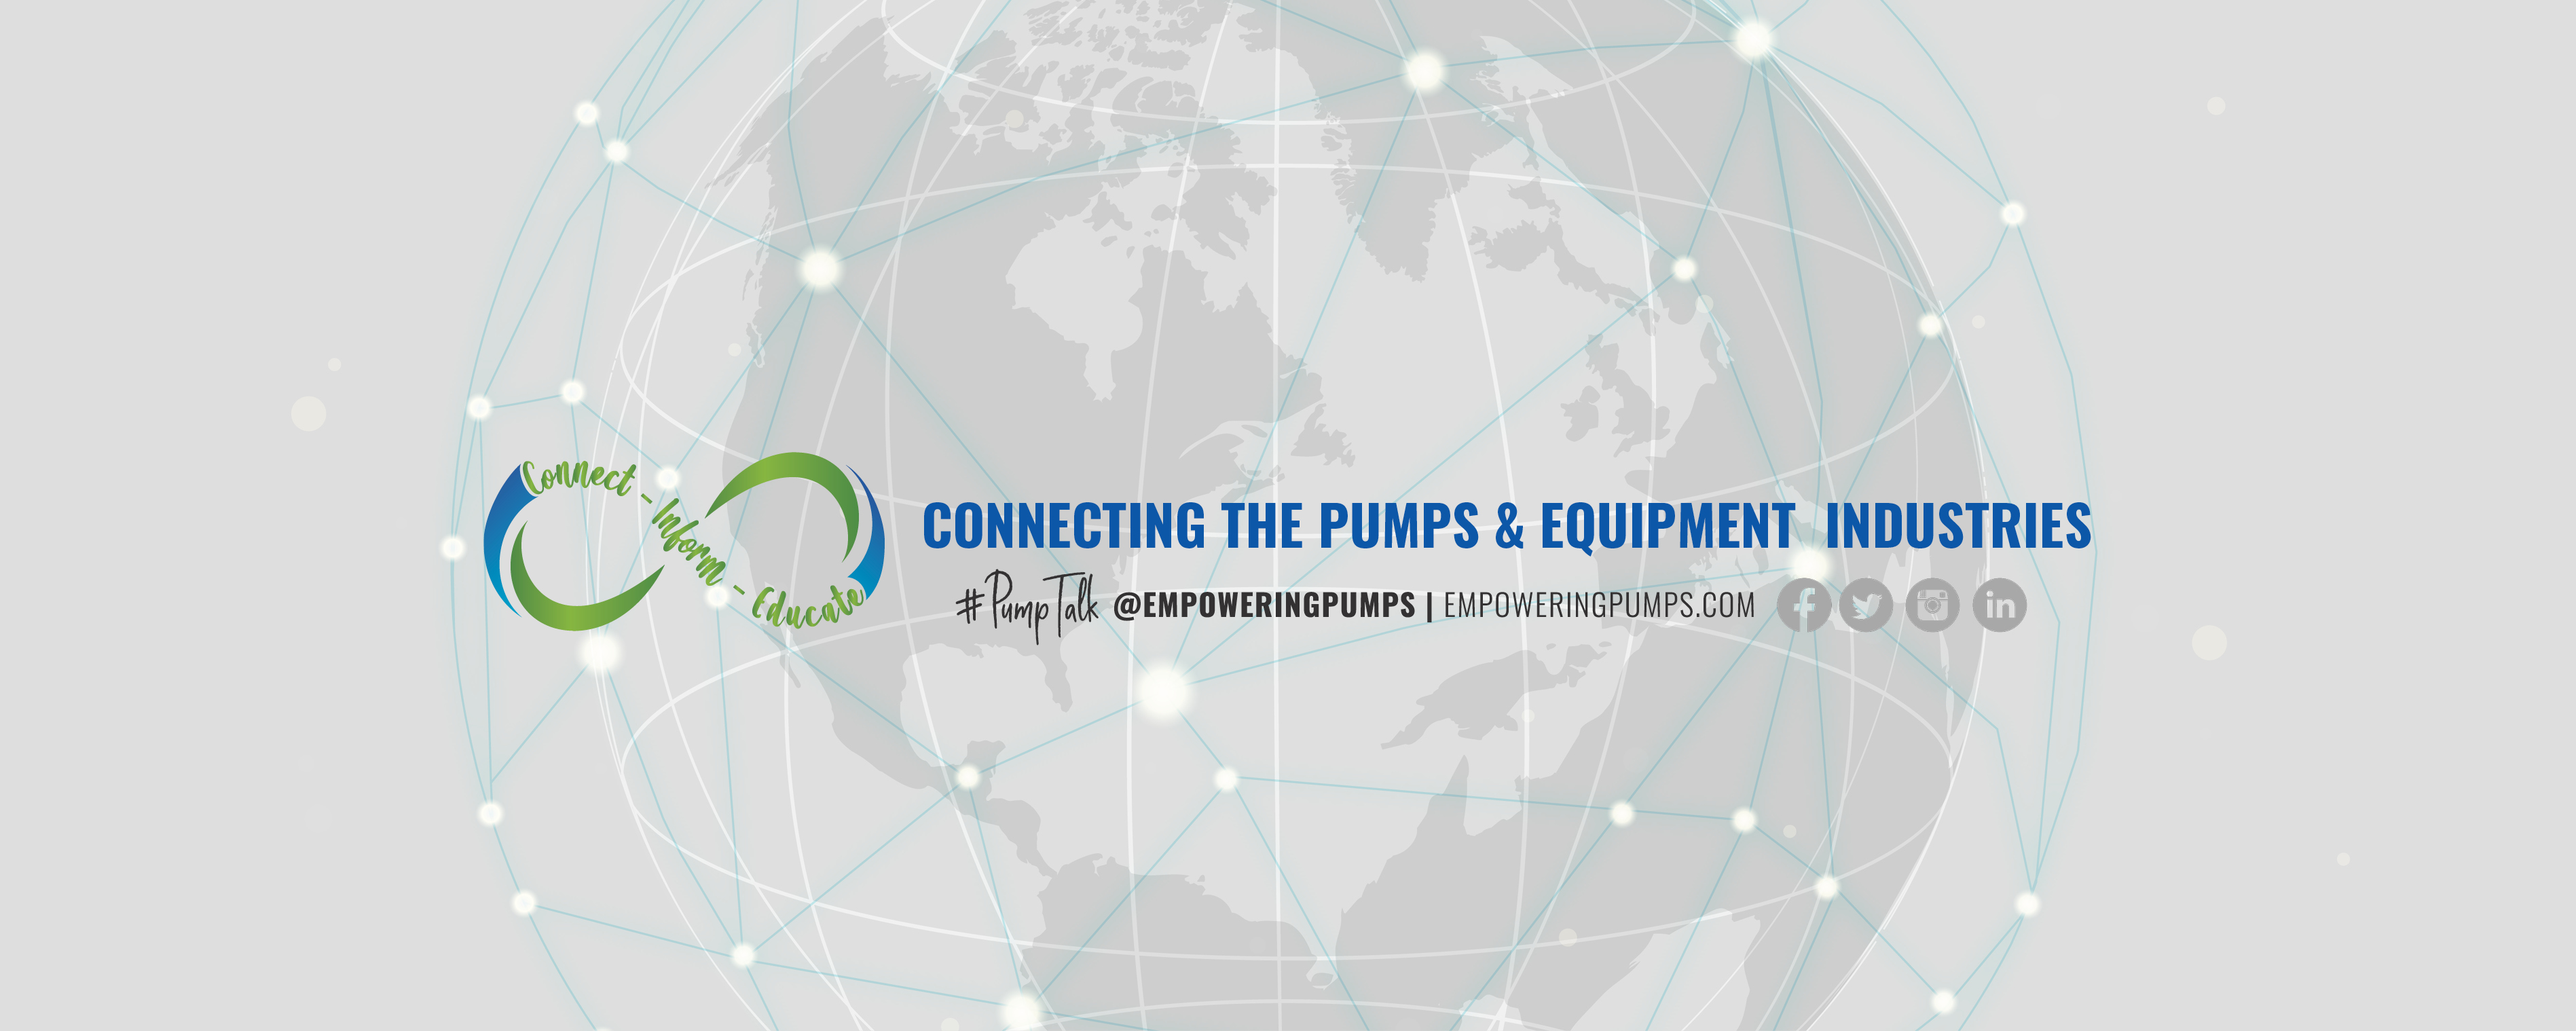 Empowering Pumps & Equipment cover image